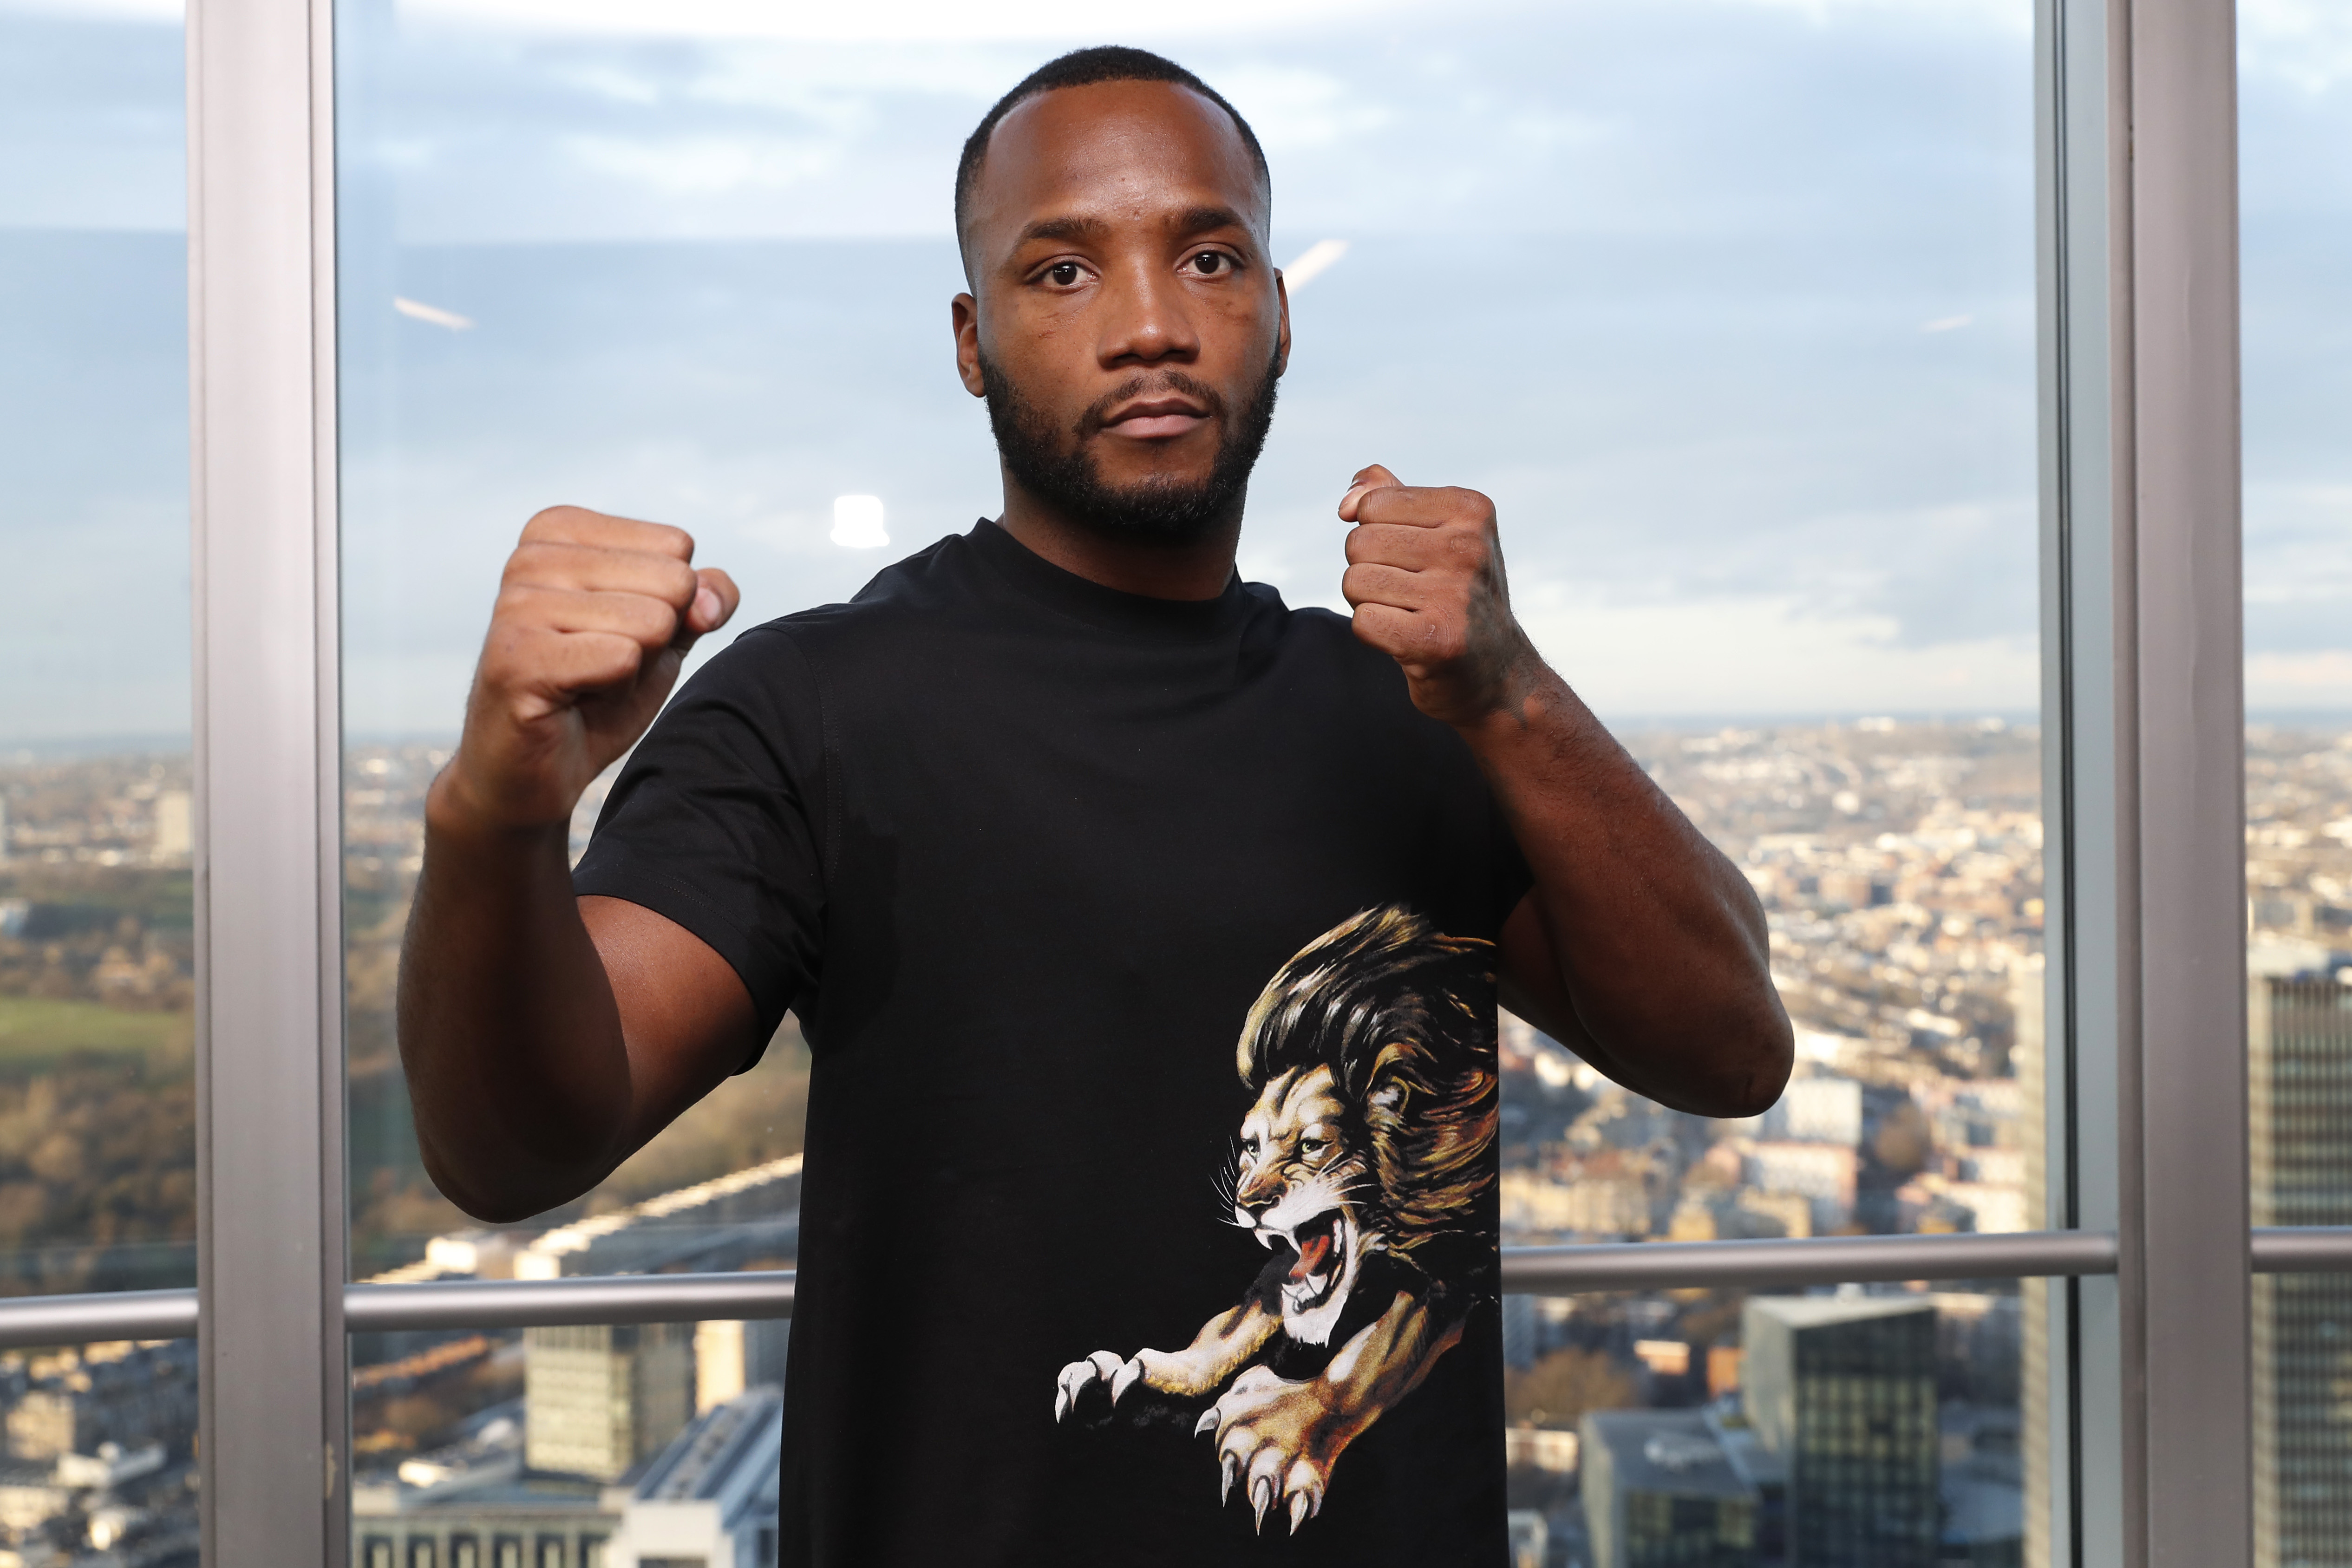 Leon Edwards, an English mixed martial artist poses for a photo during the UFC press confrence at BT Tower on January 30, 2019 in London, England.